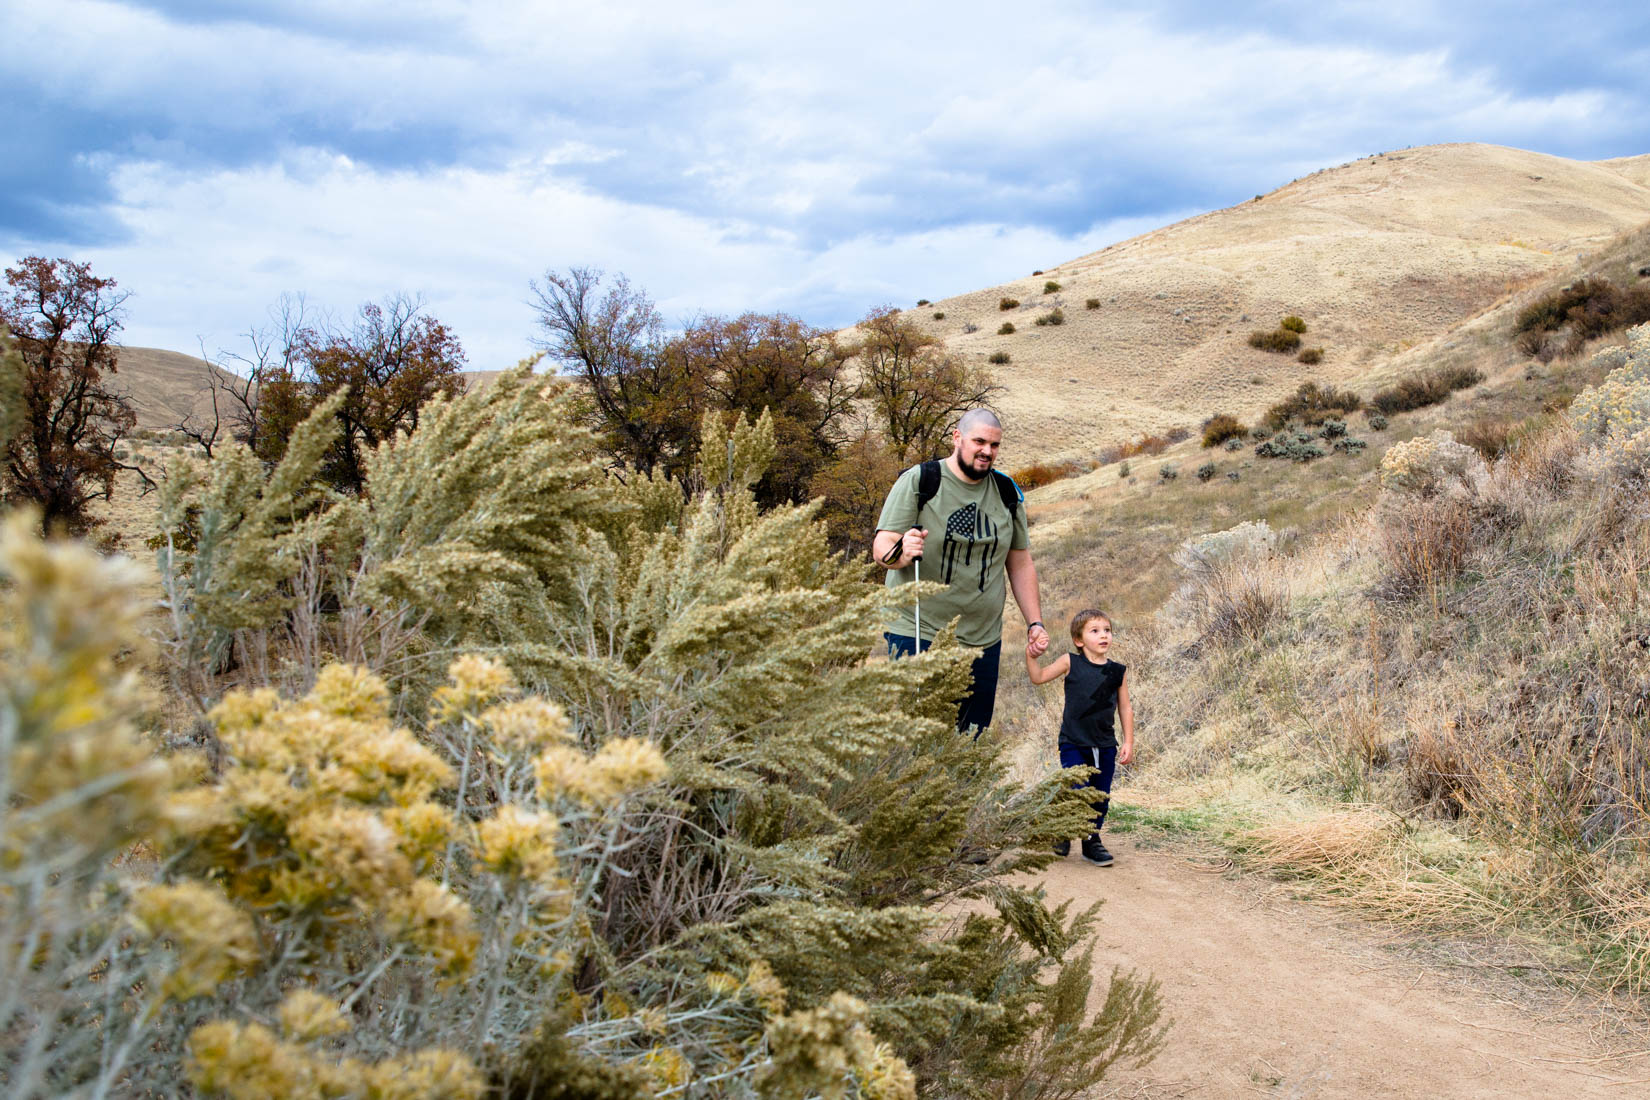 Dad and son walking on the hiking trails with the mountains ant the clouds behind them